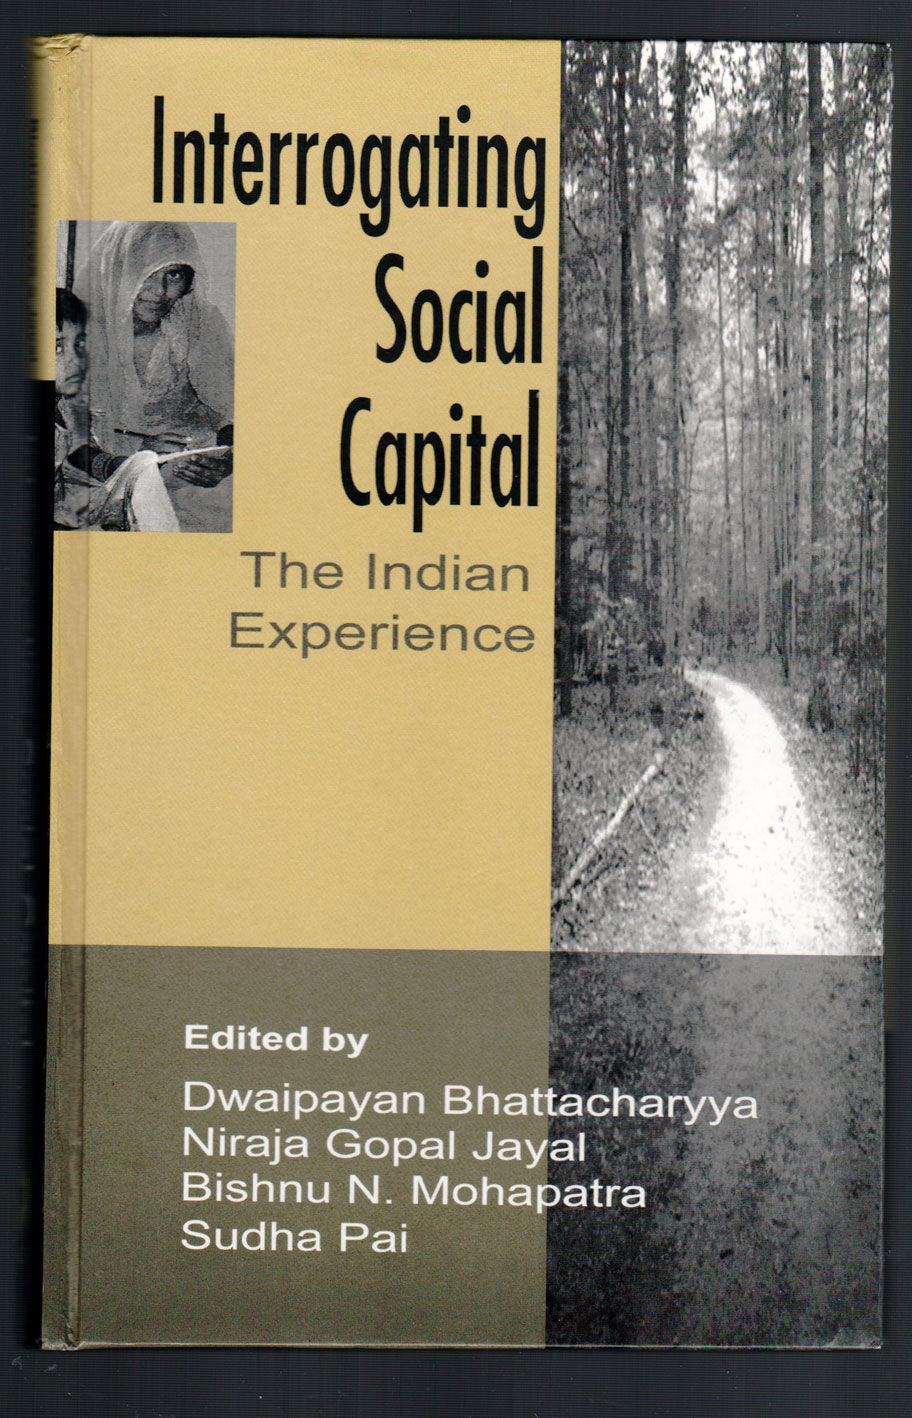 literature review facebook and social capital